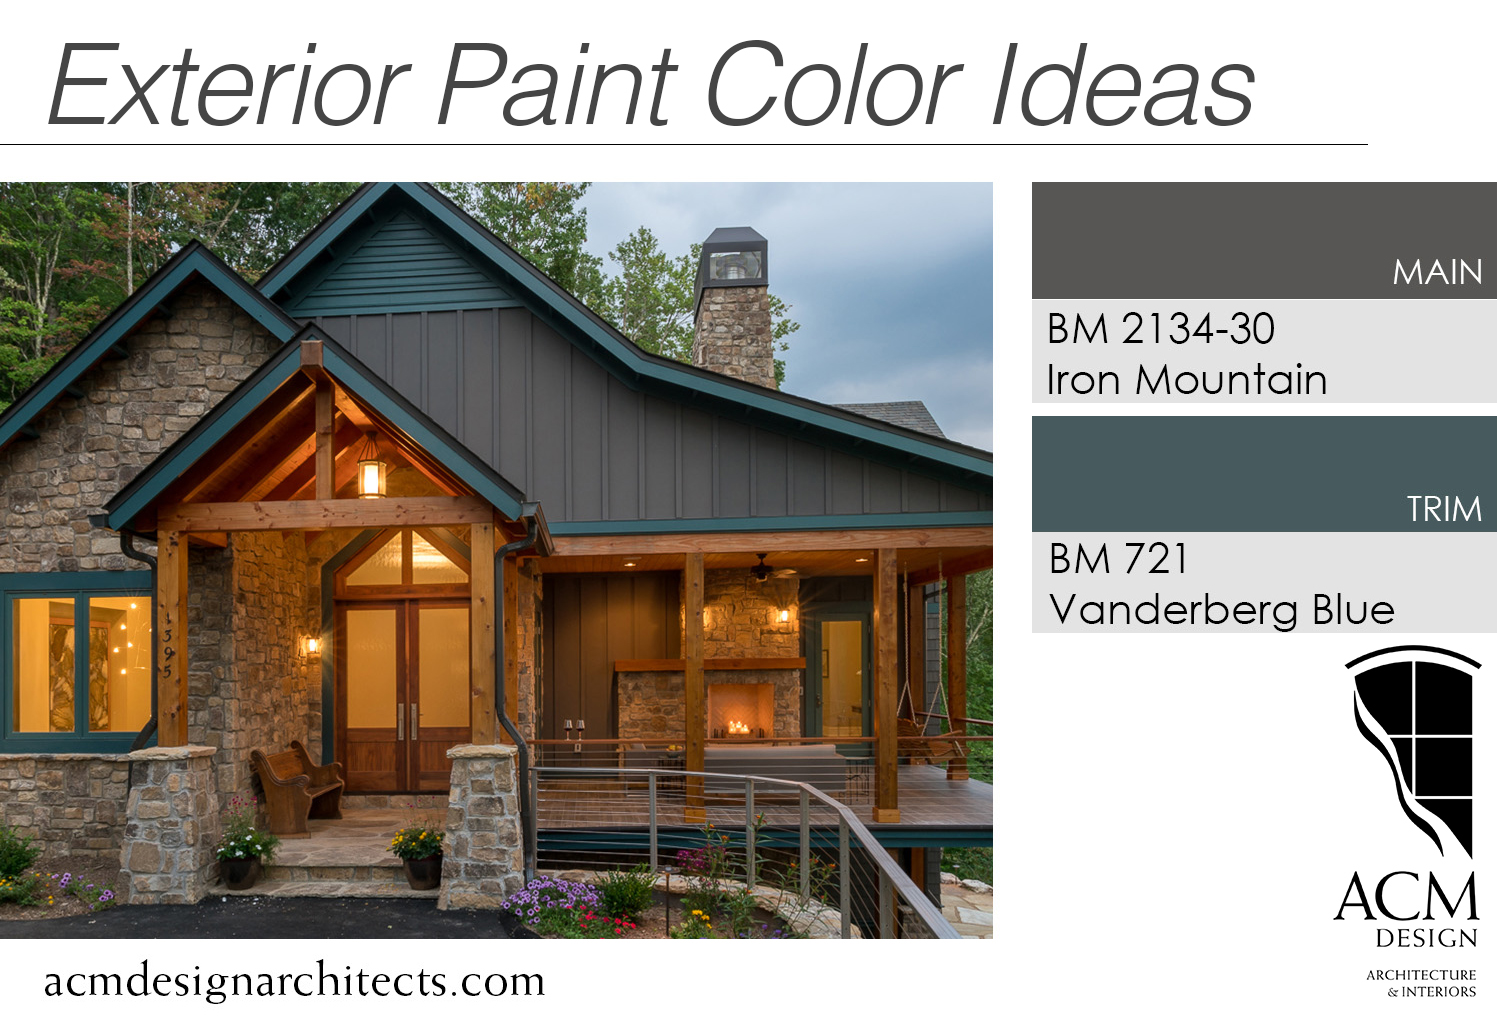 Exterior Paint Color Ideas